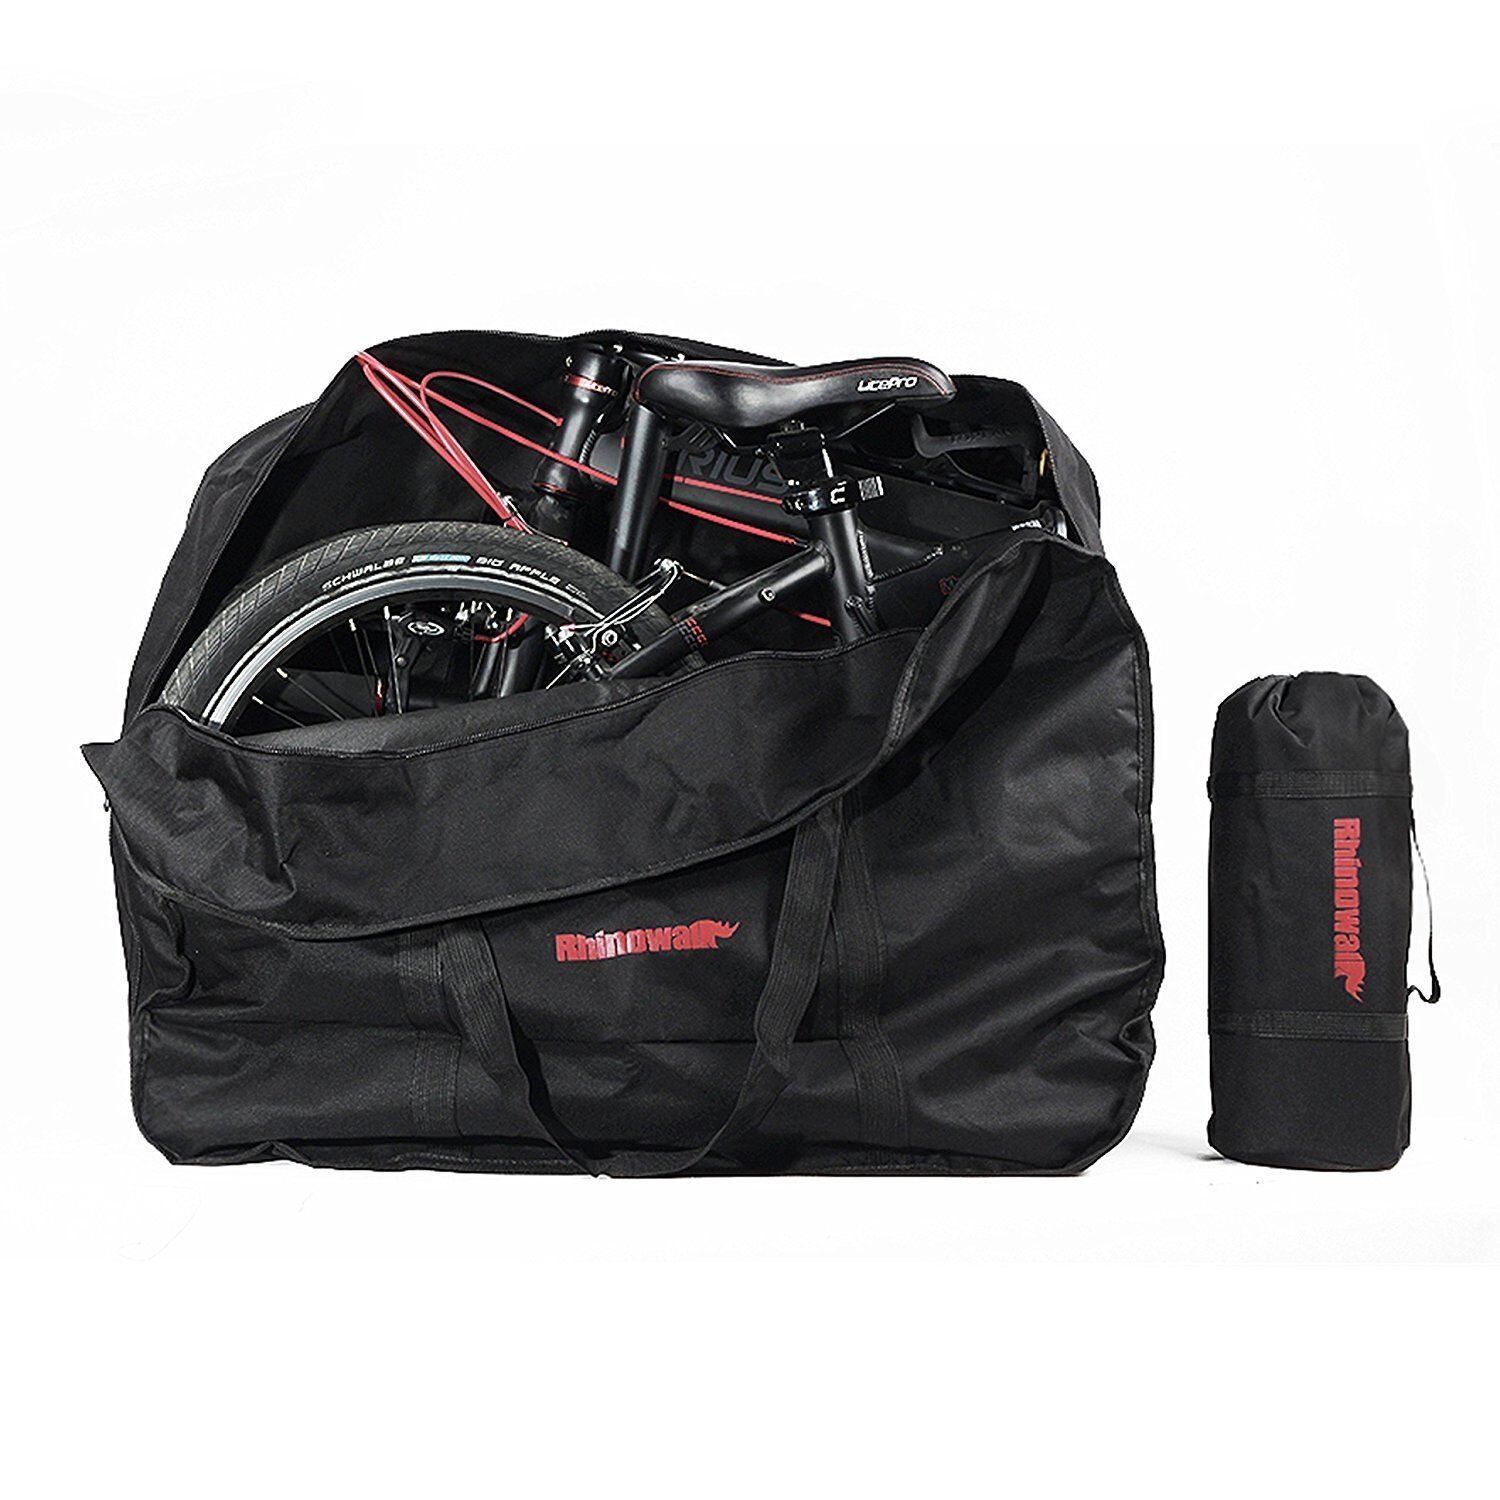 20inch Bike Travel Bags Box Bicycle Folding Carry Bag Pouch Bike Transport Cases